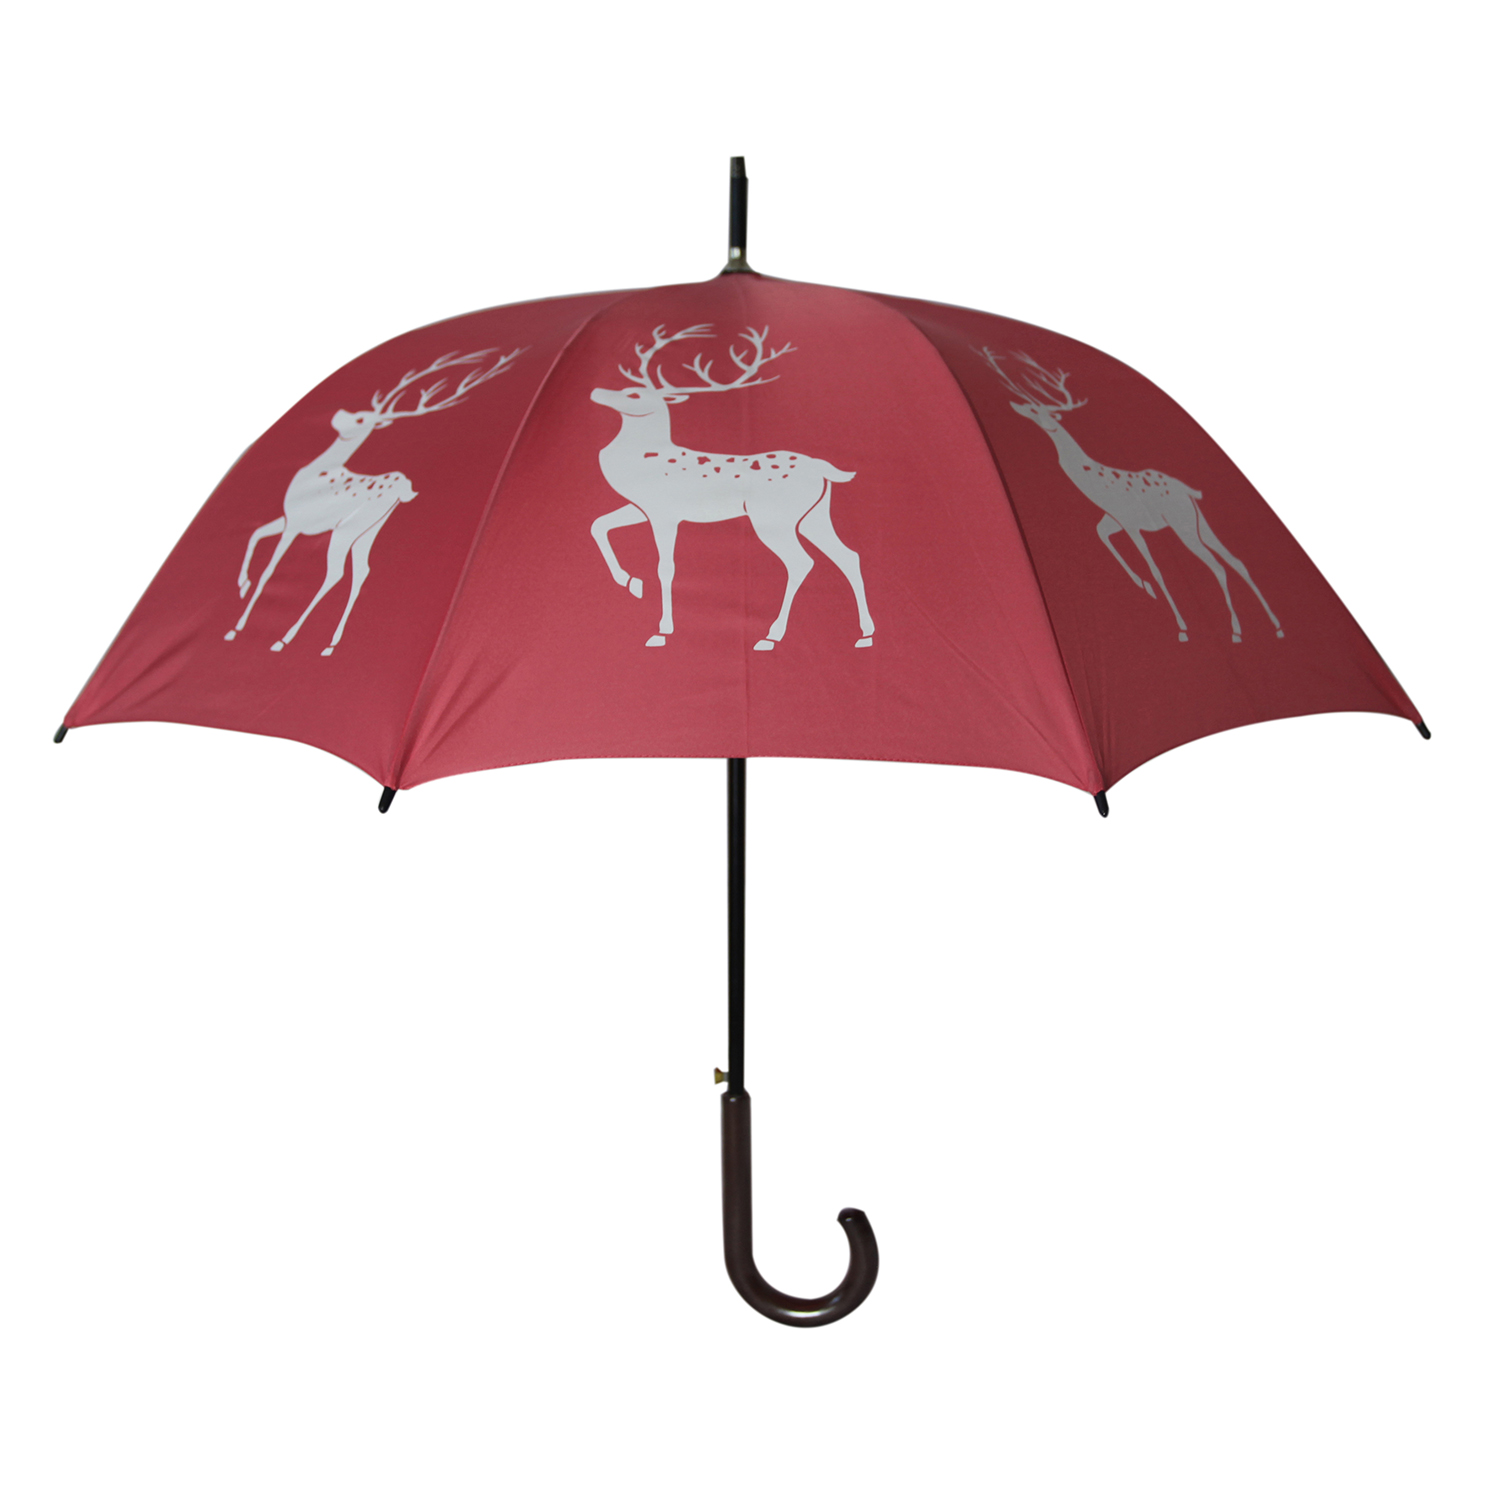 Soake – Reindeer Pink and White Automatic Stick Umbrella from the San Francisco Range